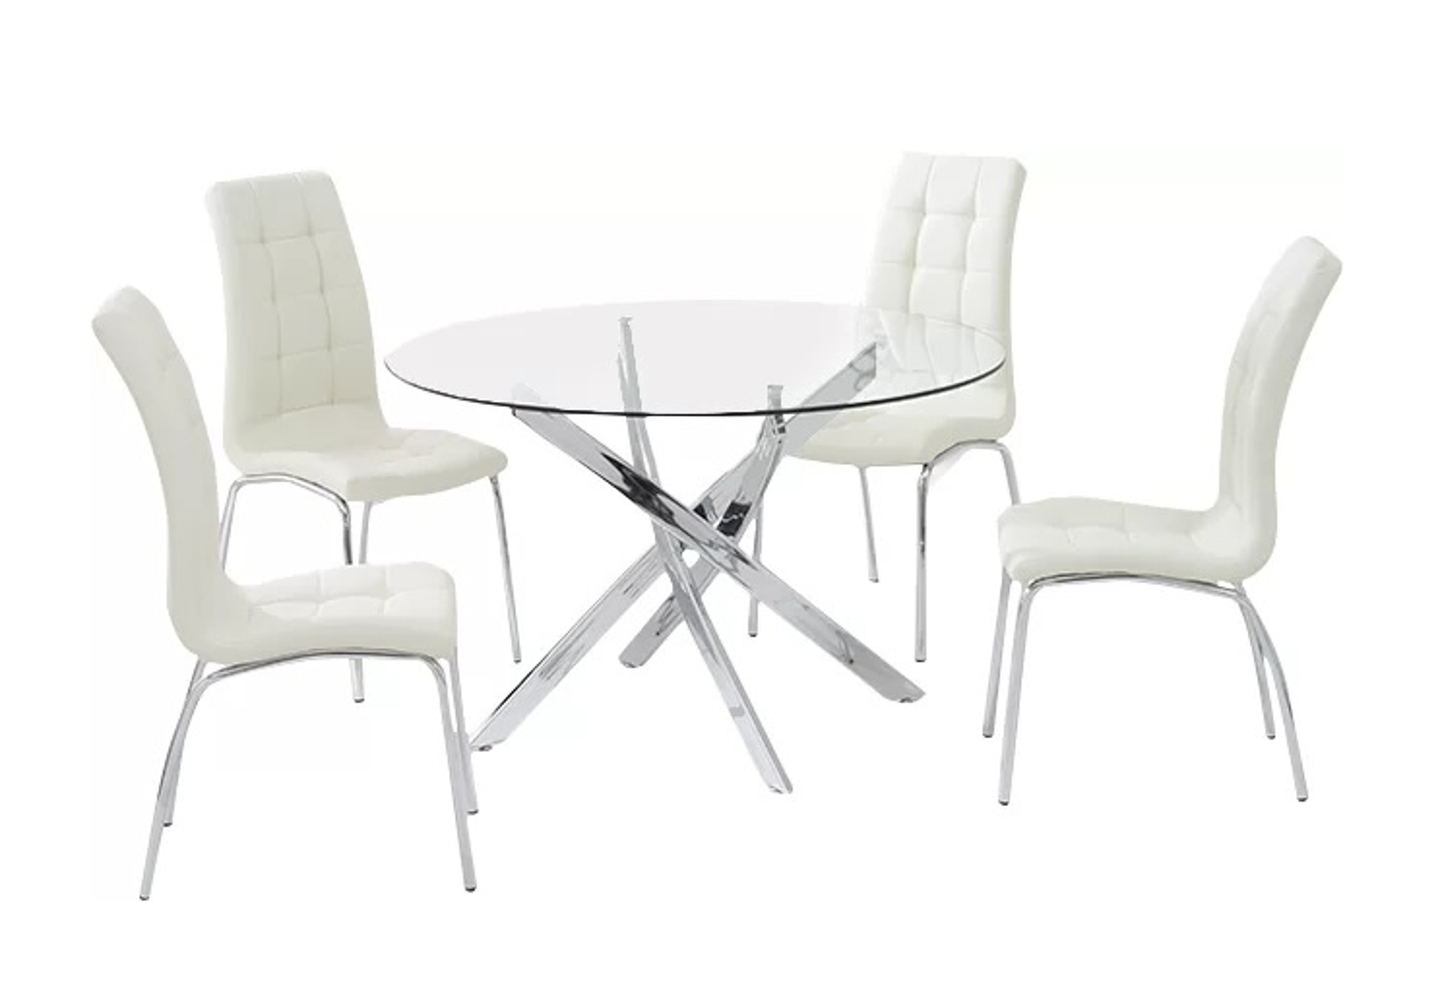 Table ronde chromé 6 chaises blanc DESIGN.1